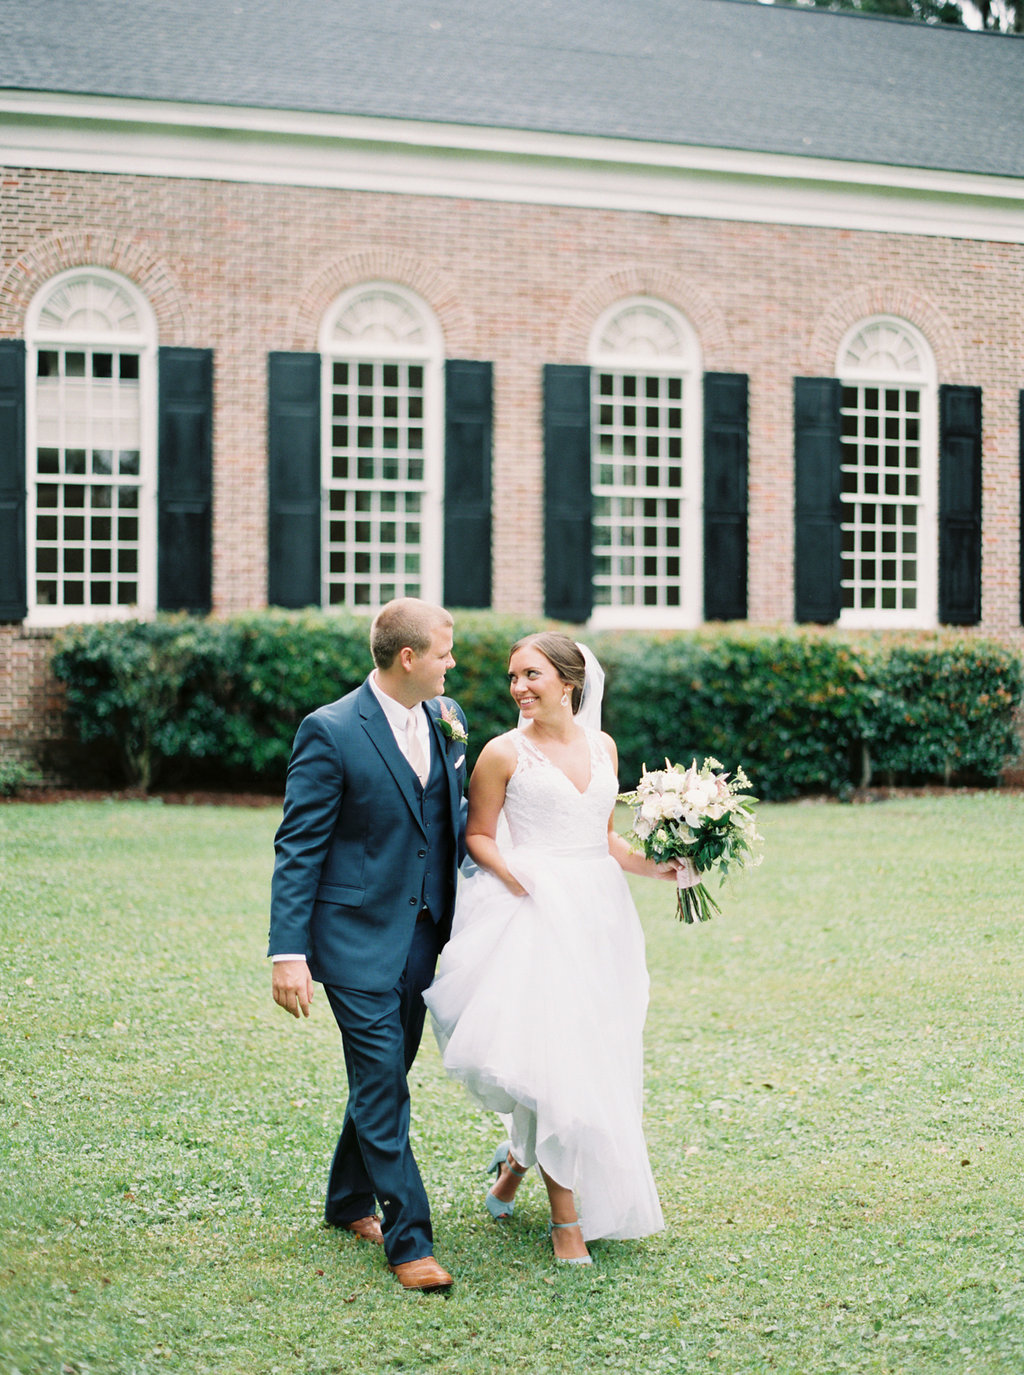 the-happy-bloom-photography-ivory-and-beau-wedding-planning-ivory-and-beau-bridal-boutique-whitfield-chapel-wedding-10-downing-wedding-savannah-wedding-historic-savannah-wedding-savannah-wedding-planner-savannah-weddings-a-to-zinnias-37.jpg